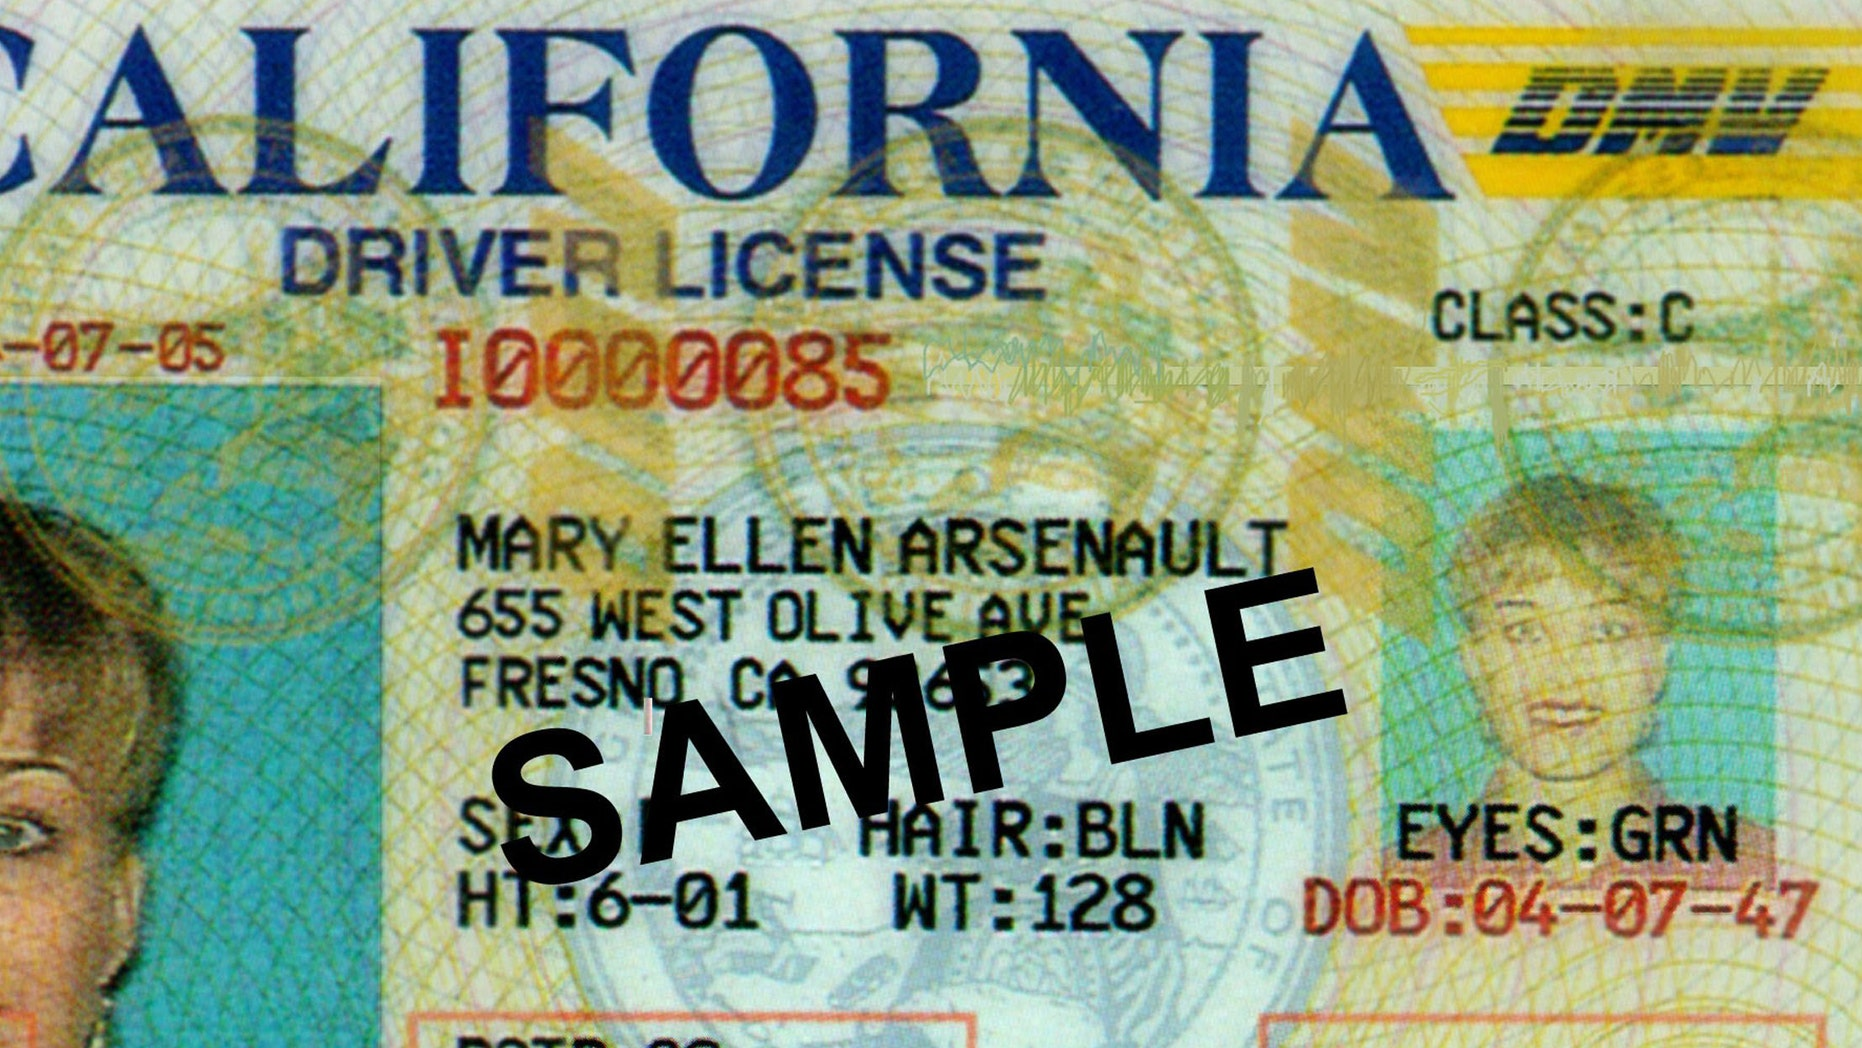 391501 01: This undated photo shows a redesign of California''s State drivers license for the prevention of theft identity and reproduction. The printing technology that is used is similar to the new US currency, which alsoprevents people from photocoping and scanning. (Courtesy of Polaroid/Getty Images)